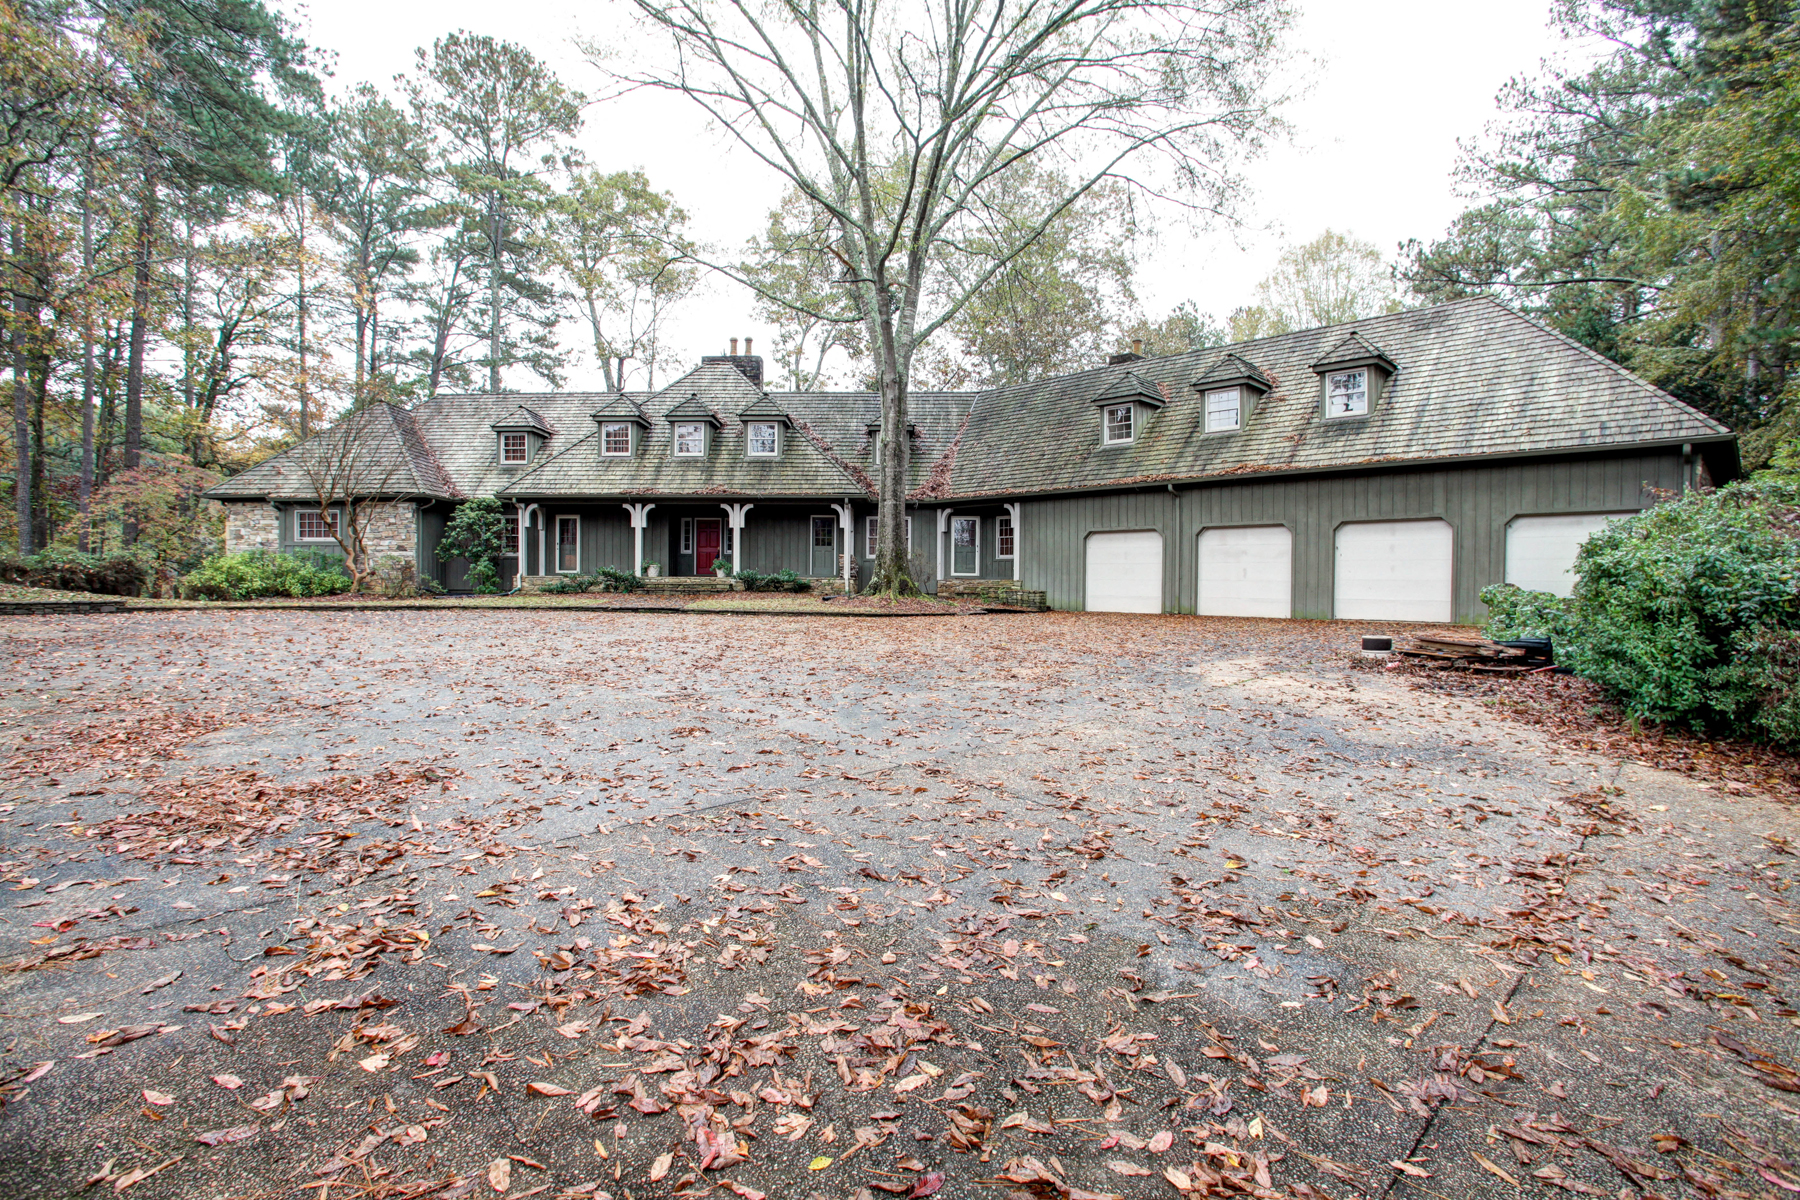 Maison unifamiliale pour l Vente à Spacious Builder's Home On 3.15 Acres And A Lake 3949 Paul Samuel Road NW Kennesaw, Georgia, 30152 États-Unis